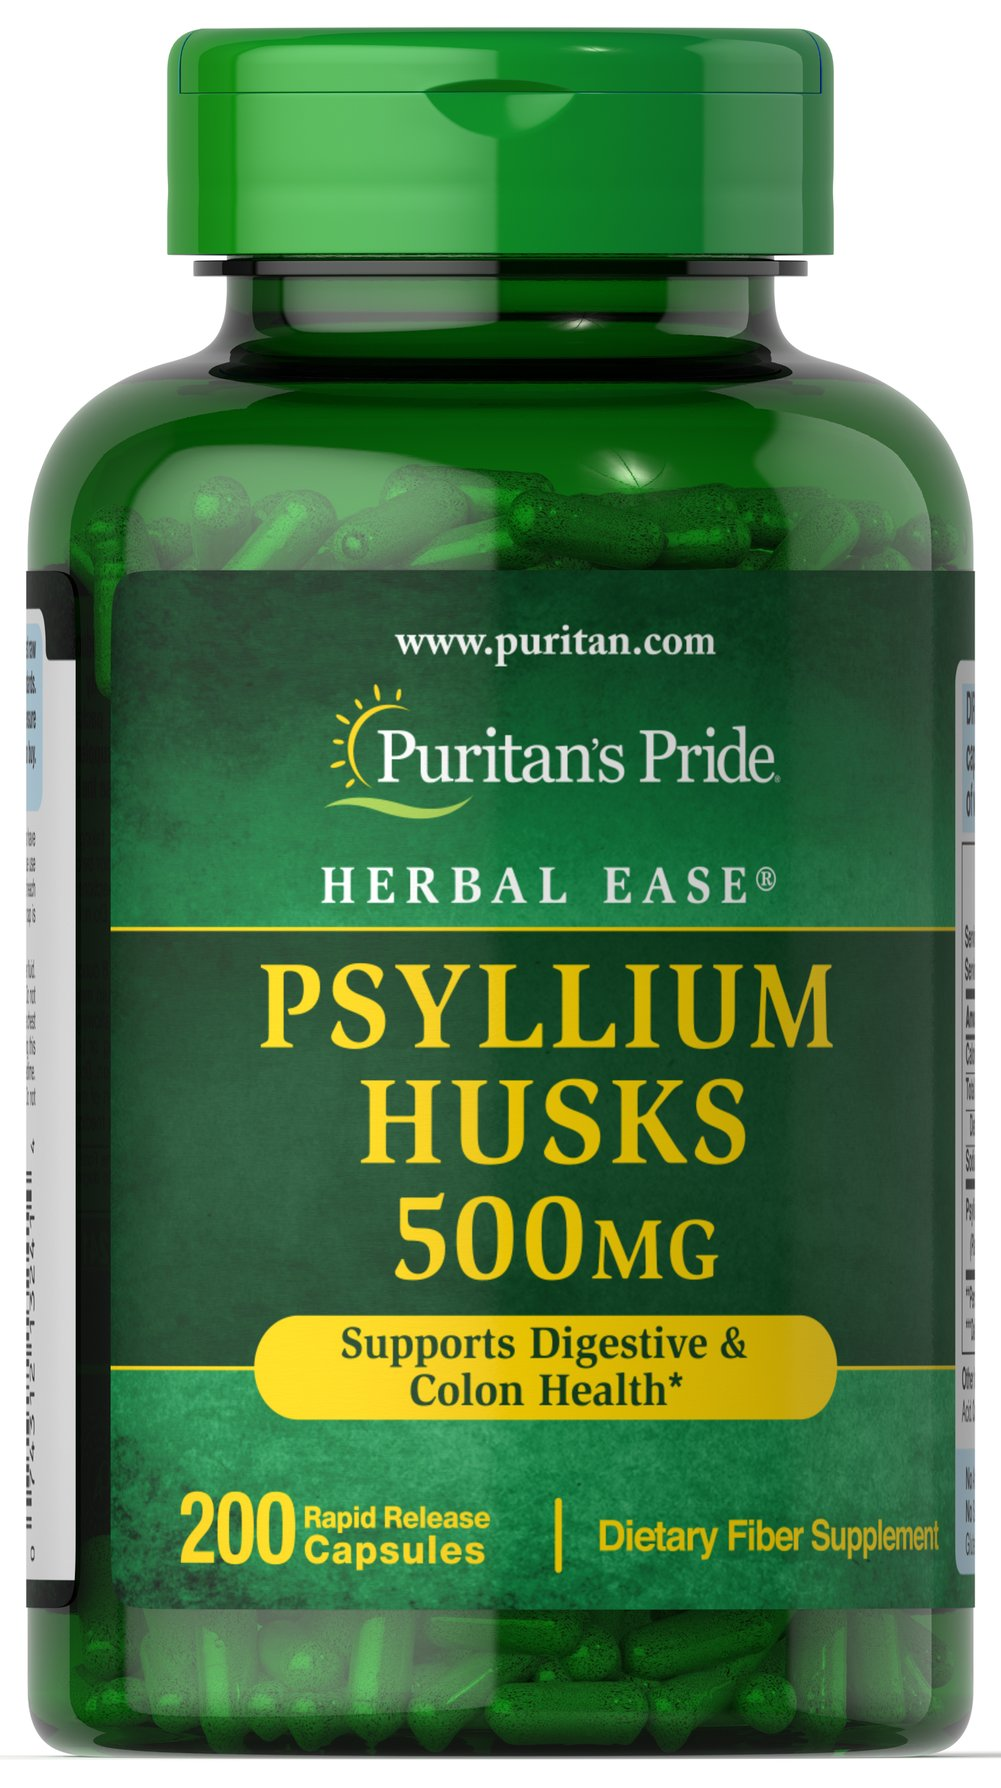 Psyllium Husks 500 mg <p>Psyllium Husks are a source of soluble fiber and a healthy addition to your diet. Our high-quality formula provides 1,000 mg of Psyllium seed husk per serving to support digestive and colon health.**</p>  200 Capsules 500 mg $13.99